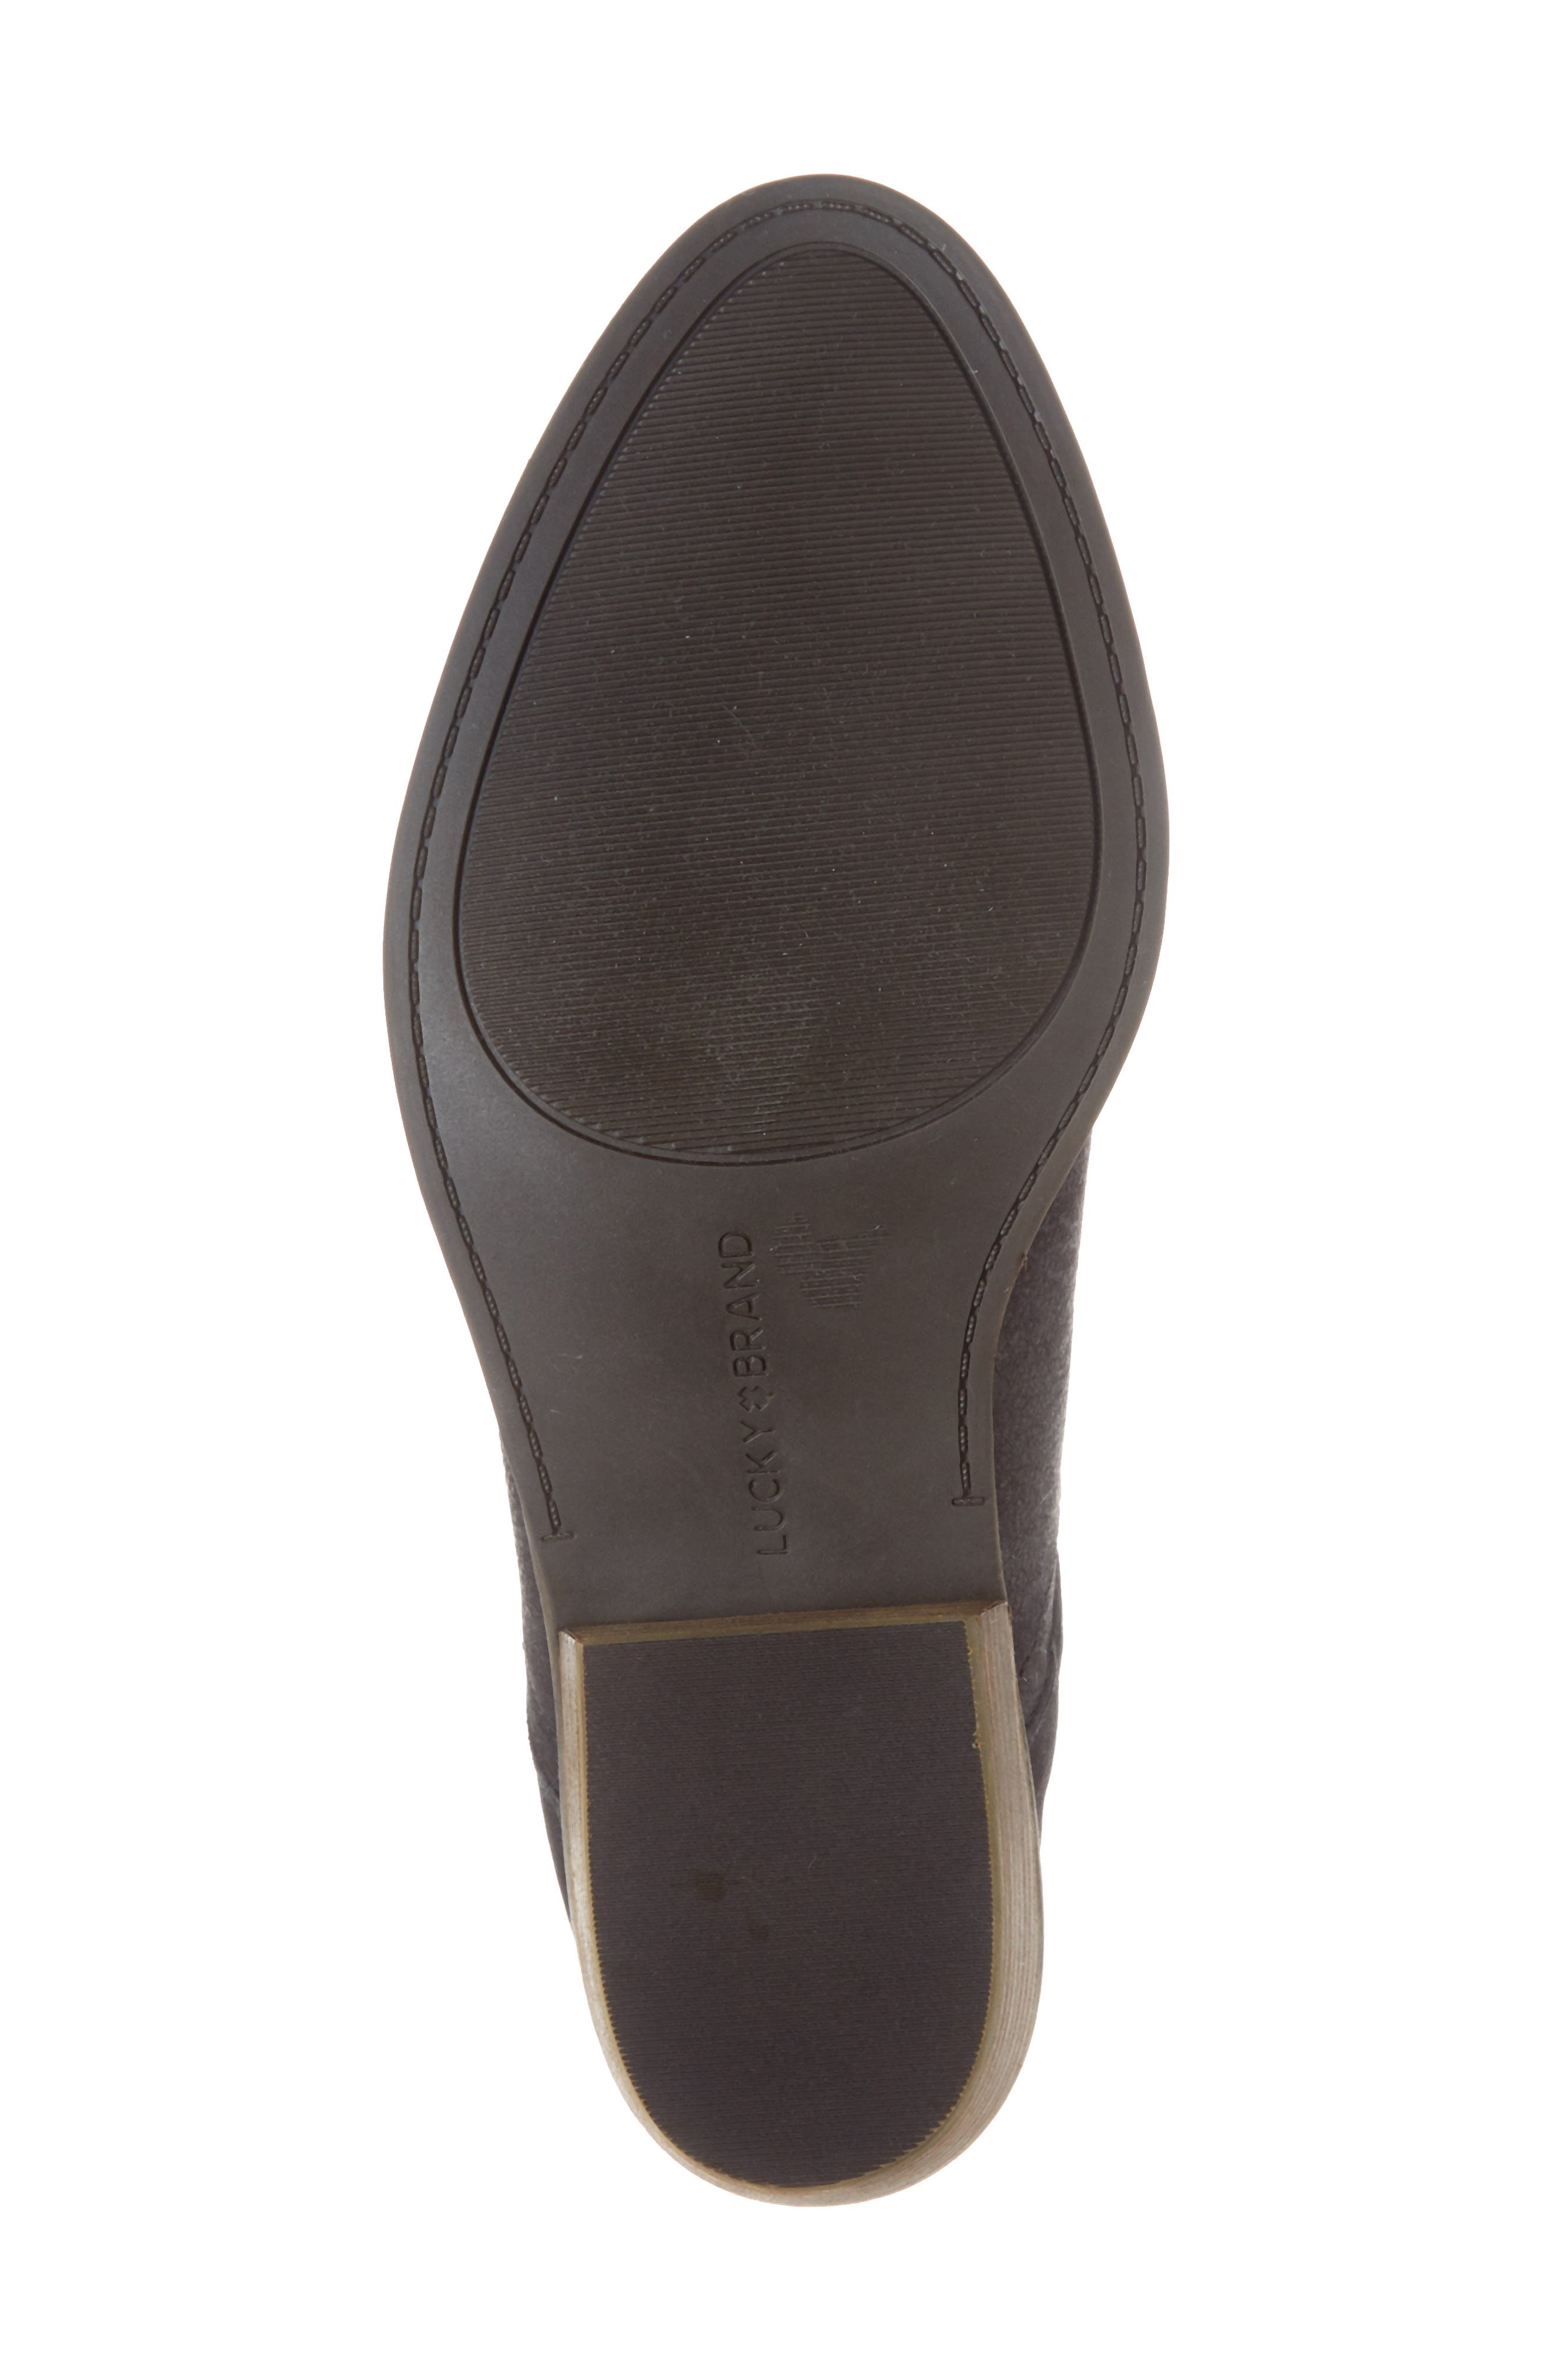 LUCKY BRAND,                             Fausst Bootie,                             Alternate thumbnail 6, color,                             001